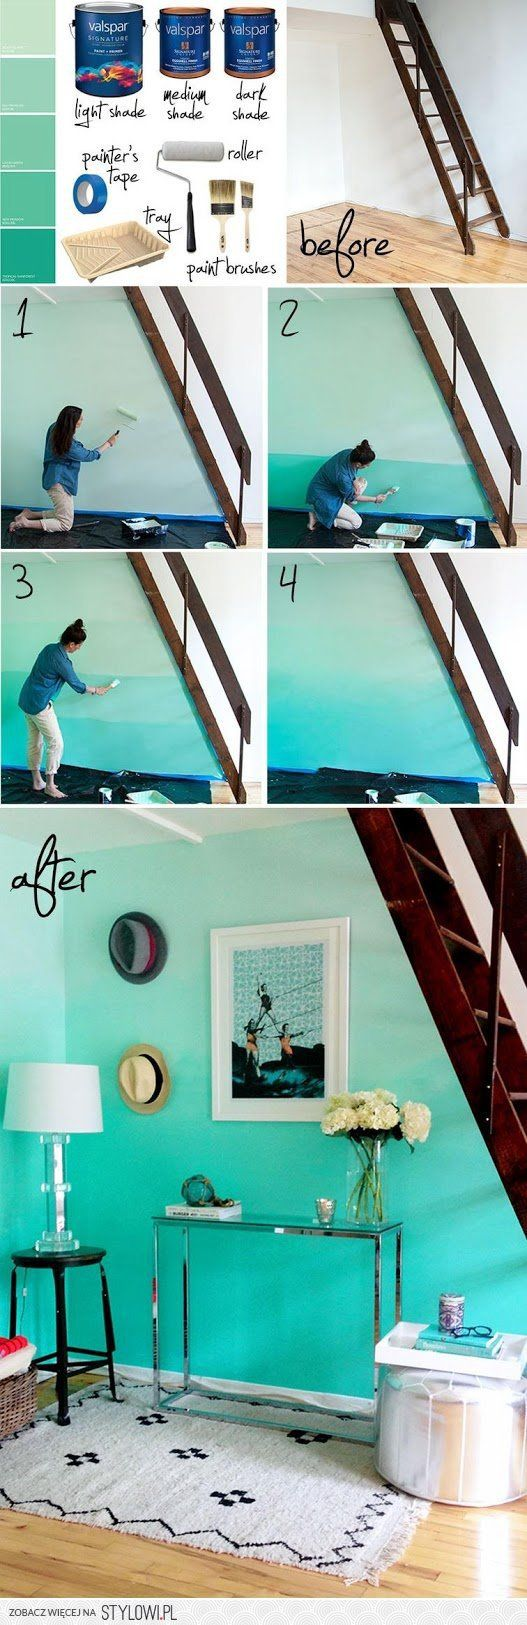 Ombre Walls: Painting Techniques, Designs and Ideas | Ombre ... for Cool Wall Paint Techniques  61obs